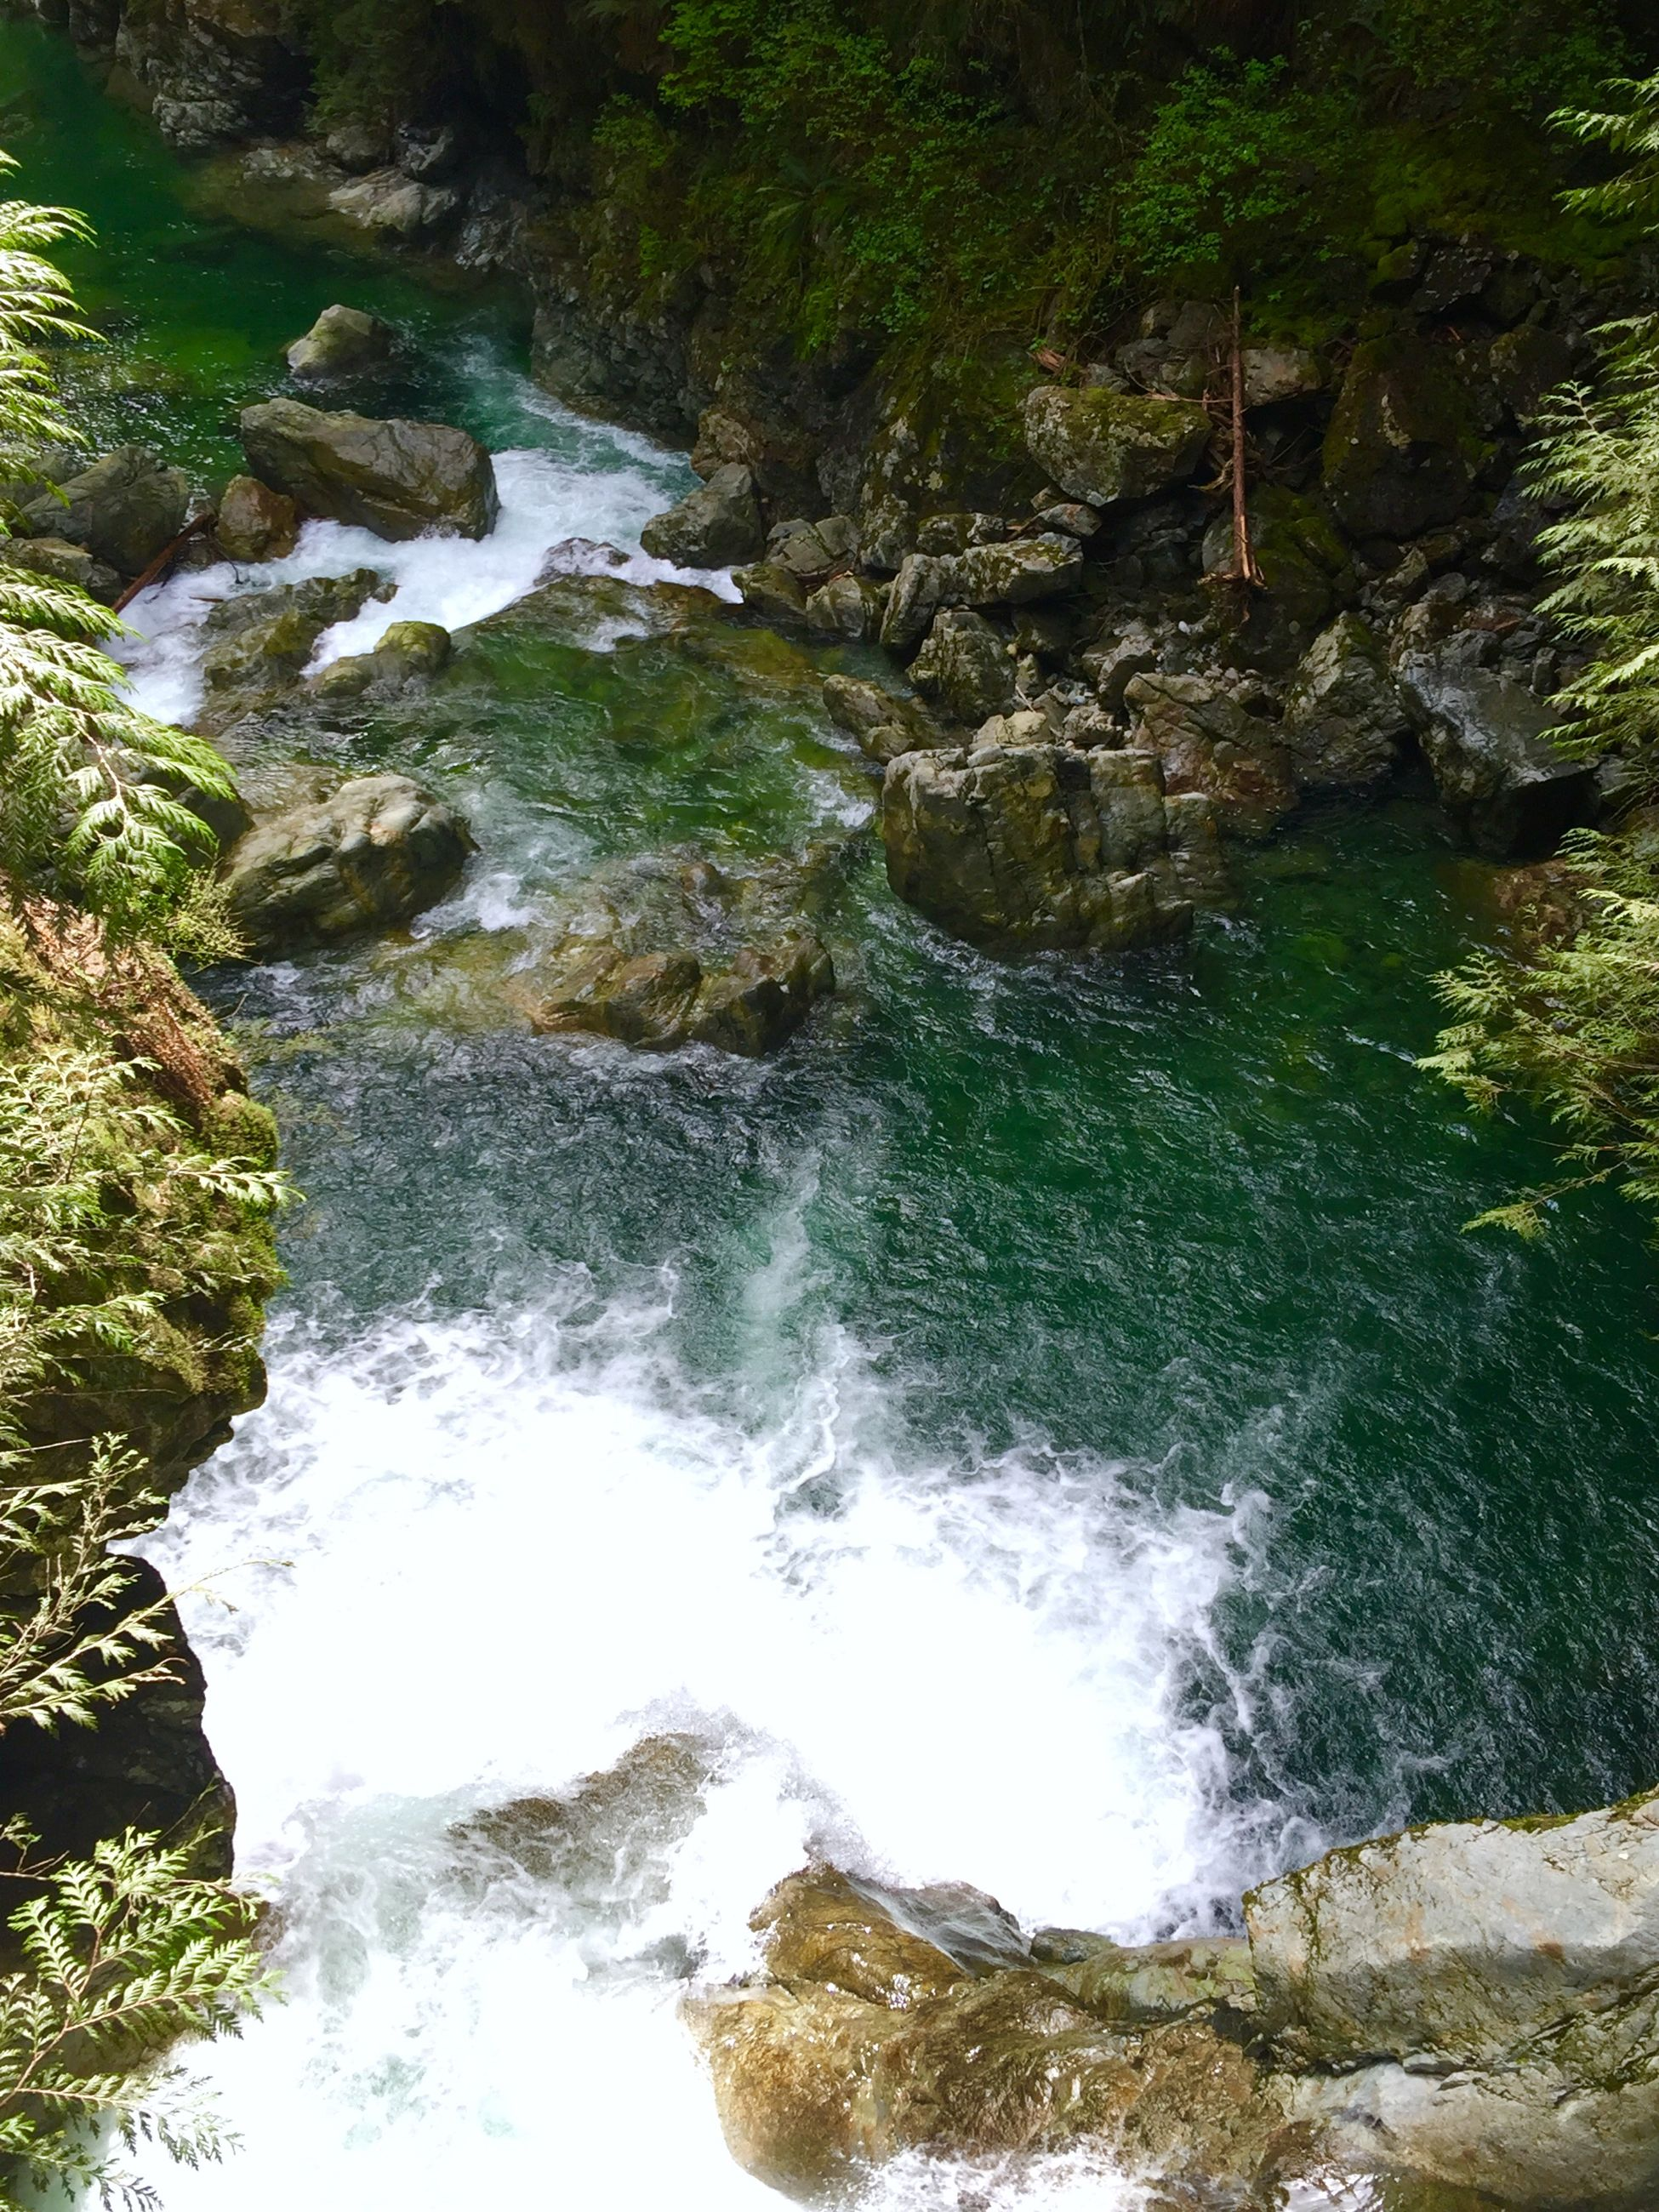 water, flowing water, waterfall, rock - object, flowing, stream, nature, motion, forest, beauty in nature, scenics, river, tree, tranquility, high angle view, tranquil scene, long exposure, day, plant, outdoors